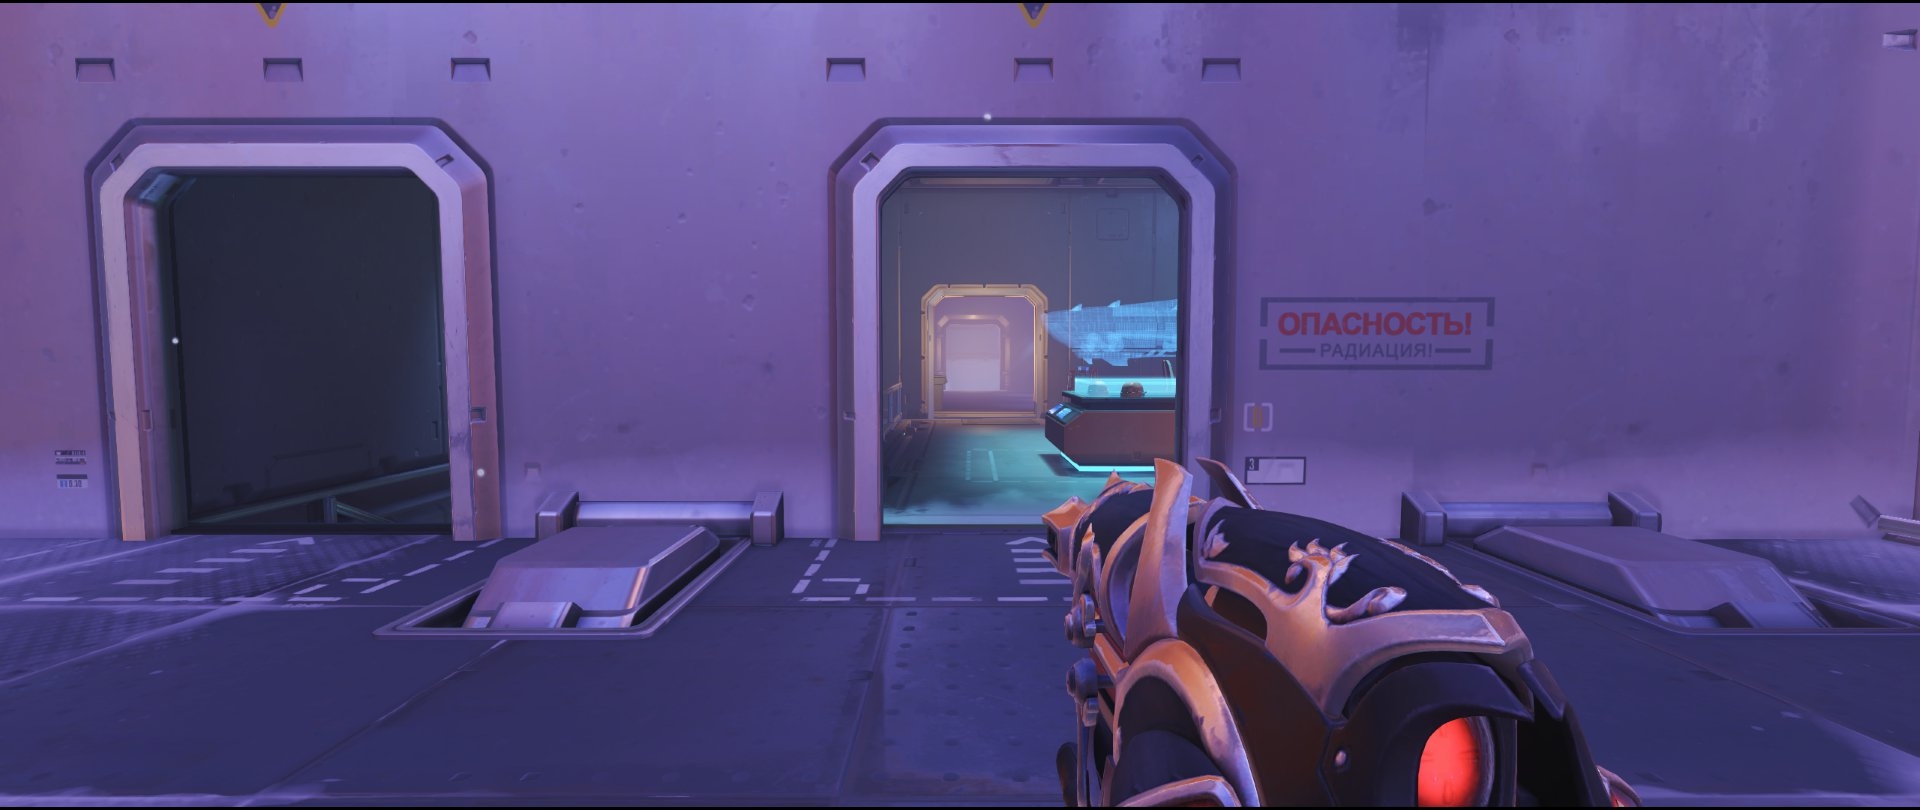 Ops to Bridge defense sniping spot Widowmaker Volskaya Industries Overwatch.jpg